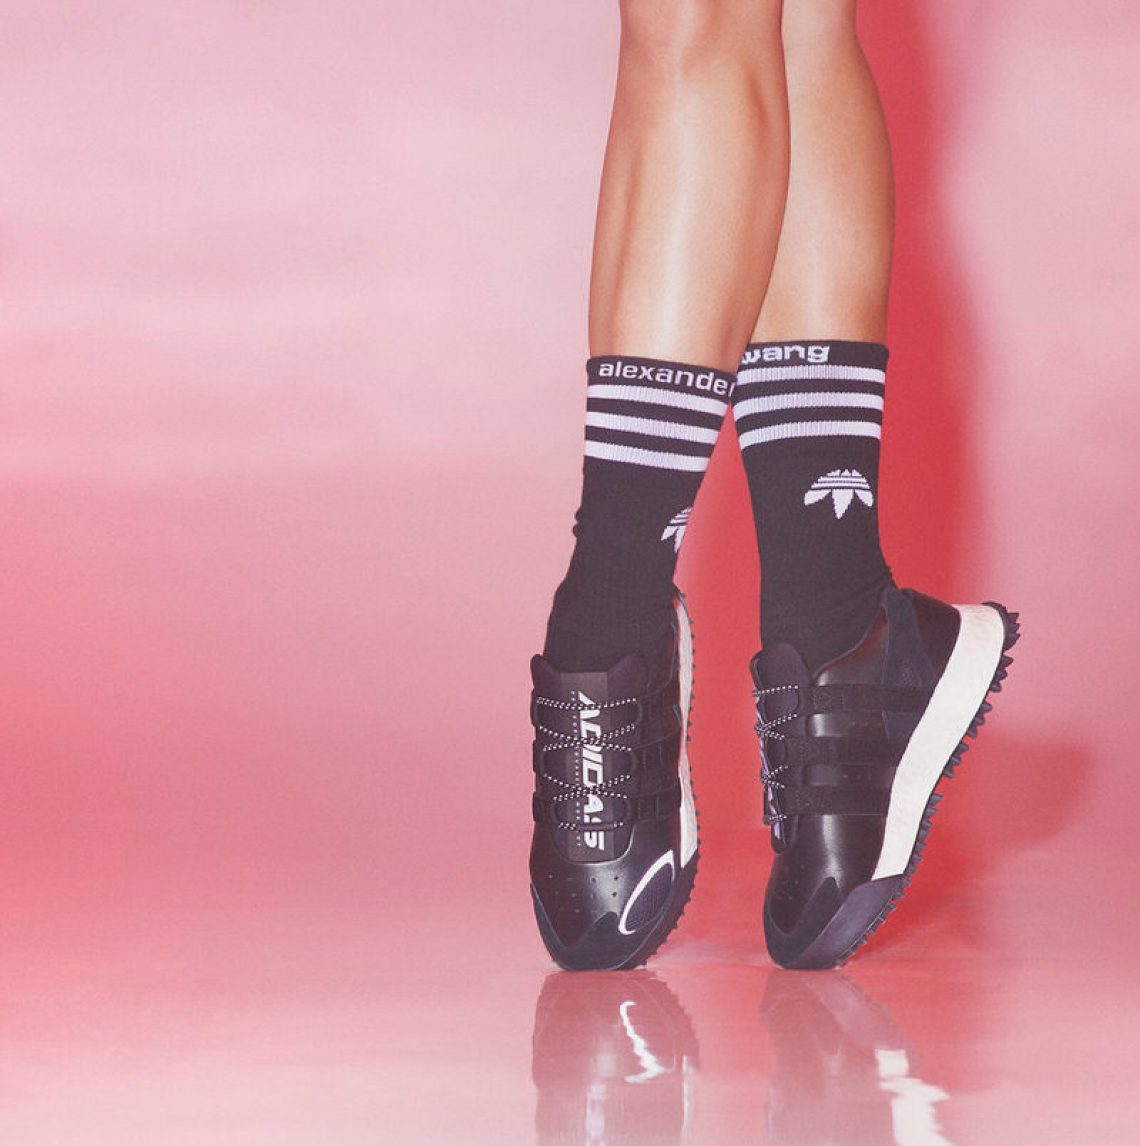 b20265c01 Alexander Wang s Latest Collection with adidas is Club Leisure ...